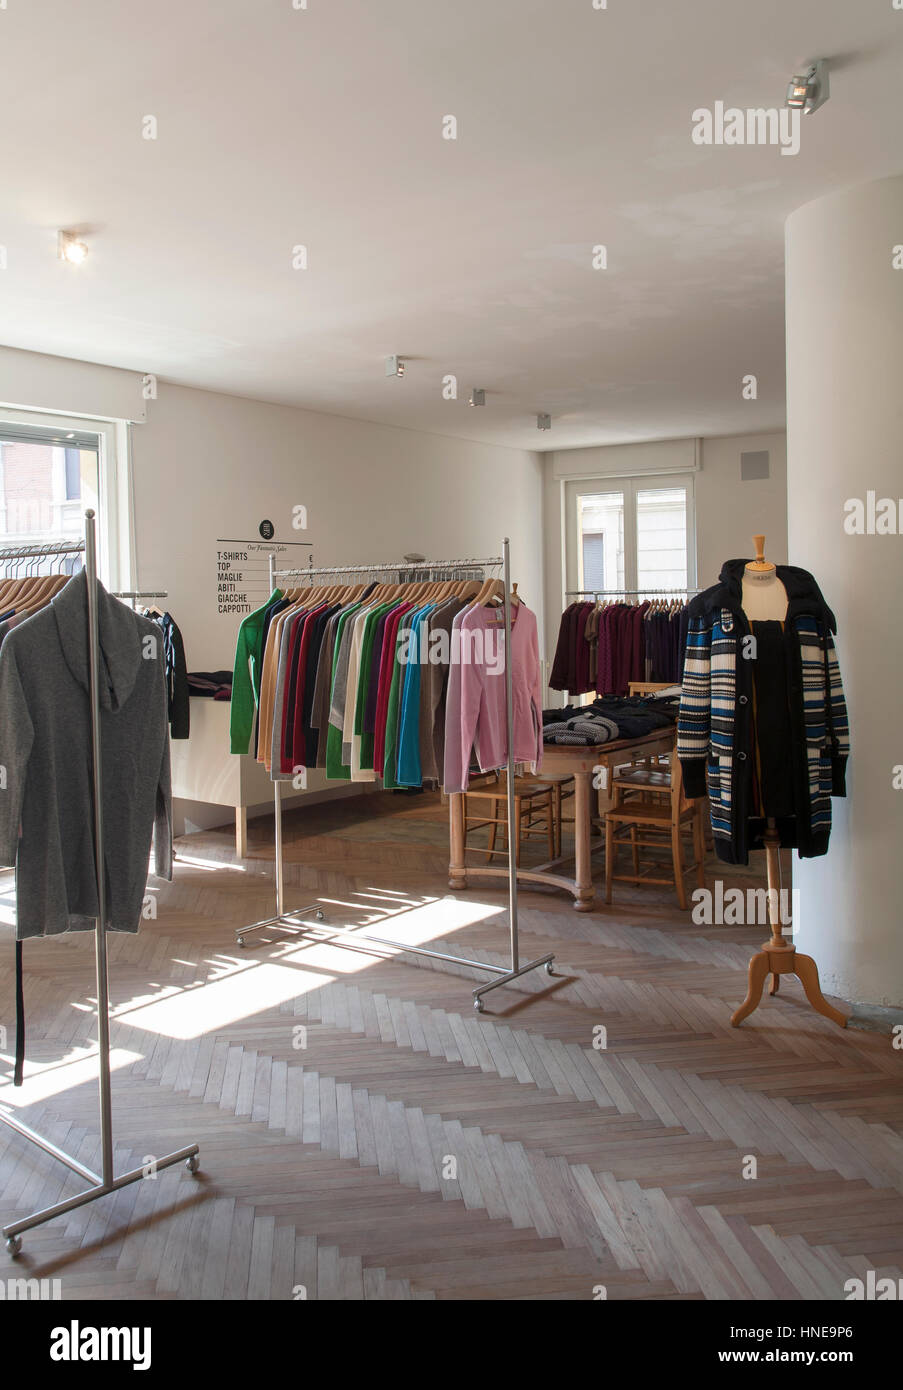 Interior of a small commercial storage room of a clothing store for women